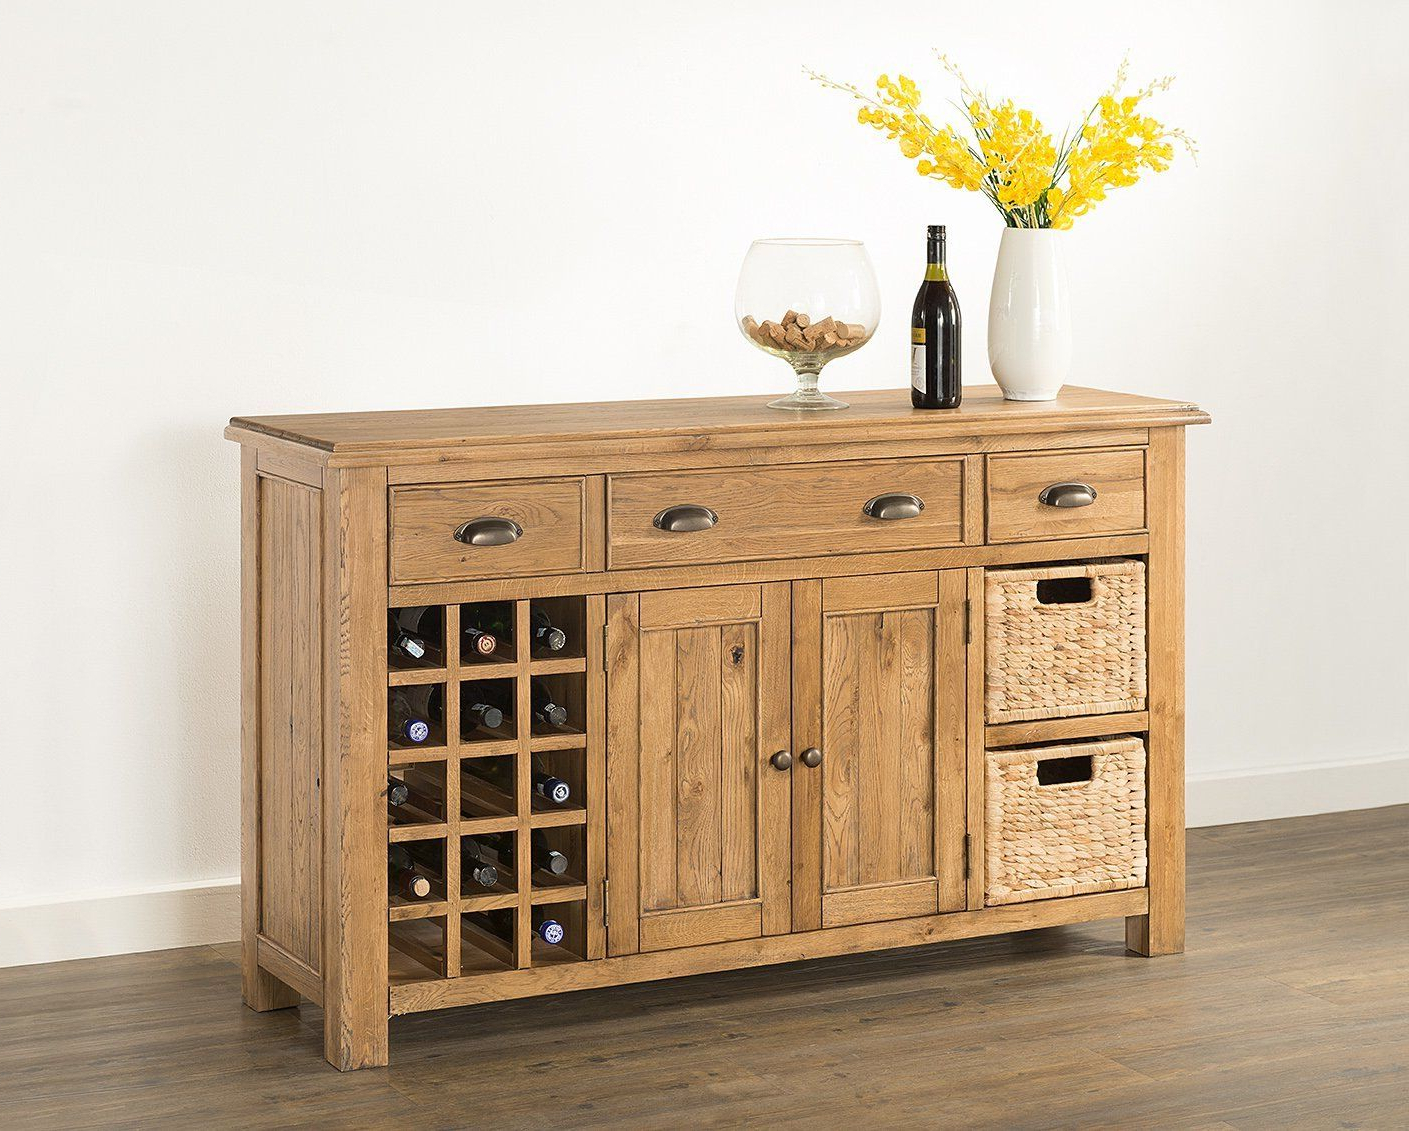 Kendall Sideboards With Regard To Most Recent Kendall Oak Large Sideboard With Wine Rack/baskets (View 12 of 20)